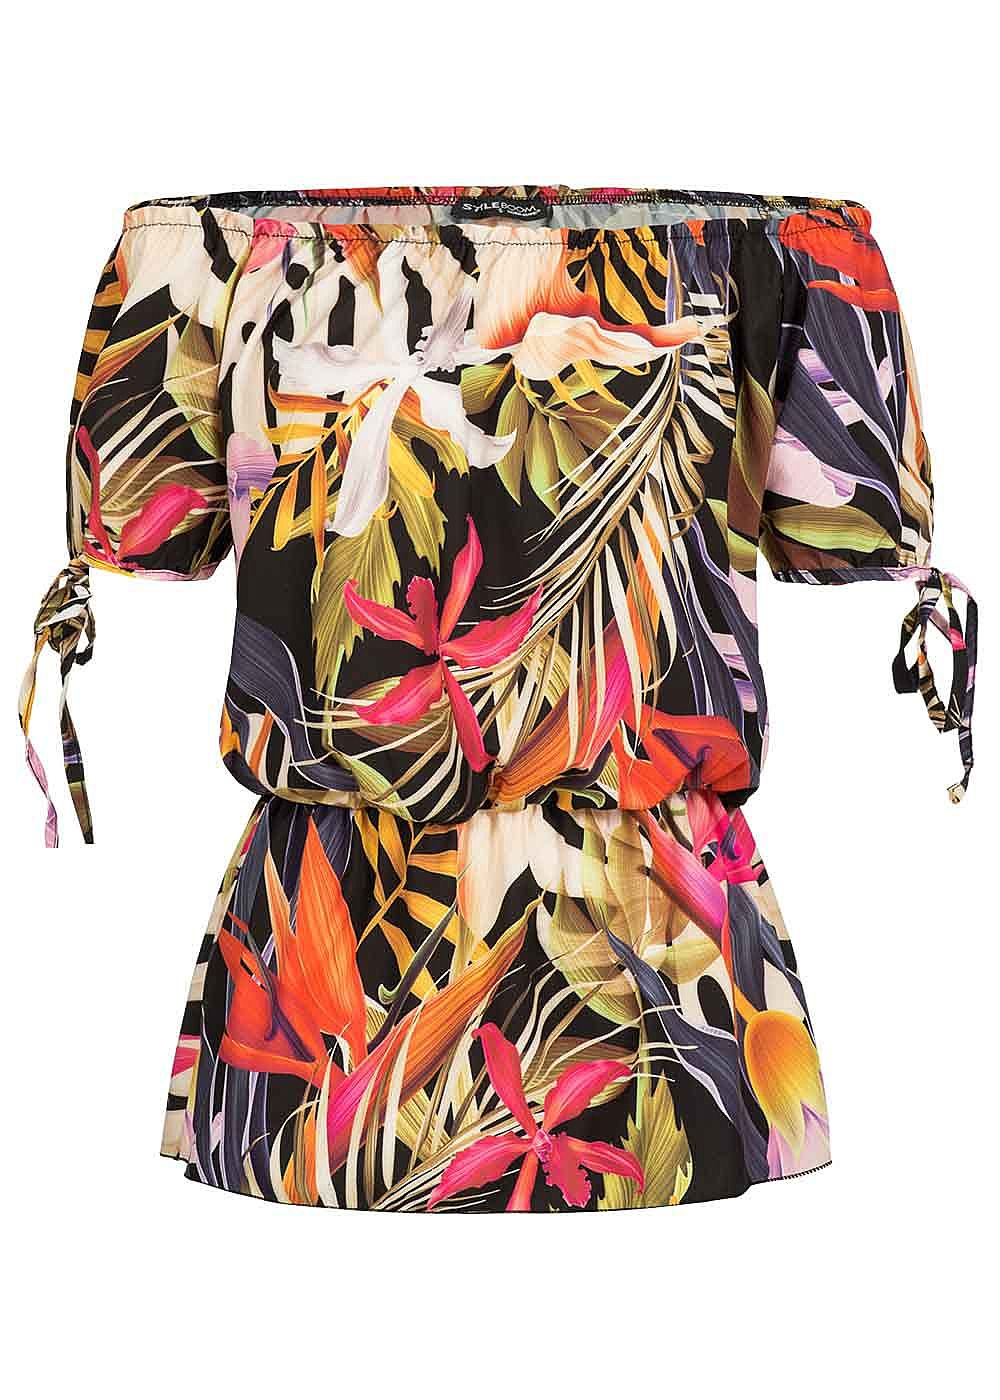 Styleboom Fashion Damen Off-Shoulder Top Tropical Print schwarz pink rosa - Art.-Nr.: 18067734-M-BK